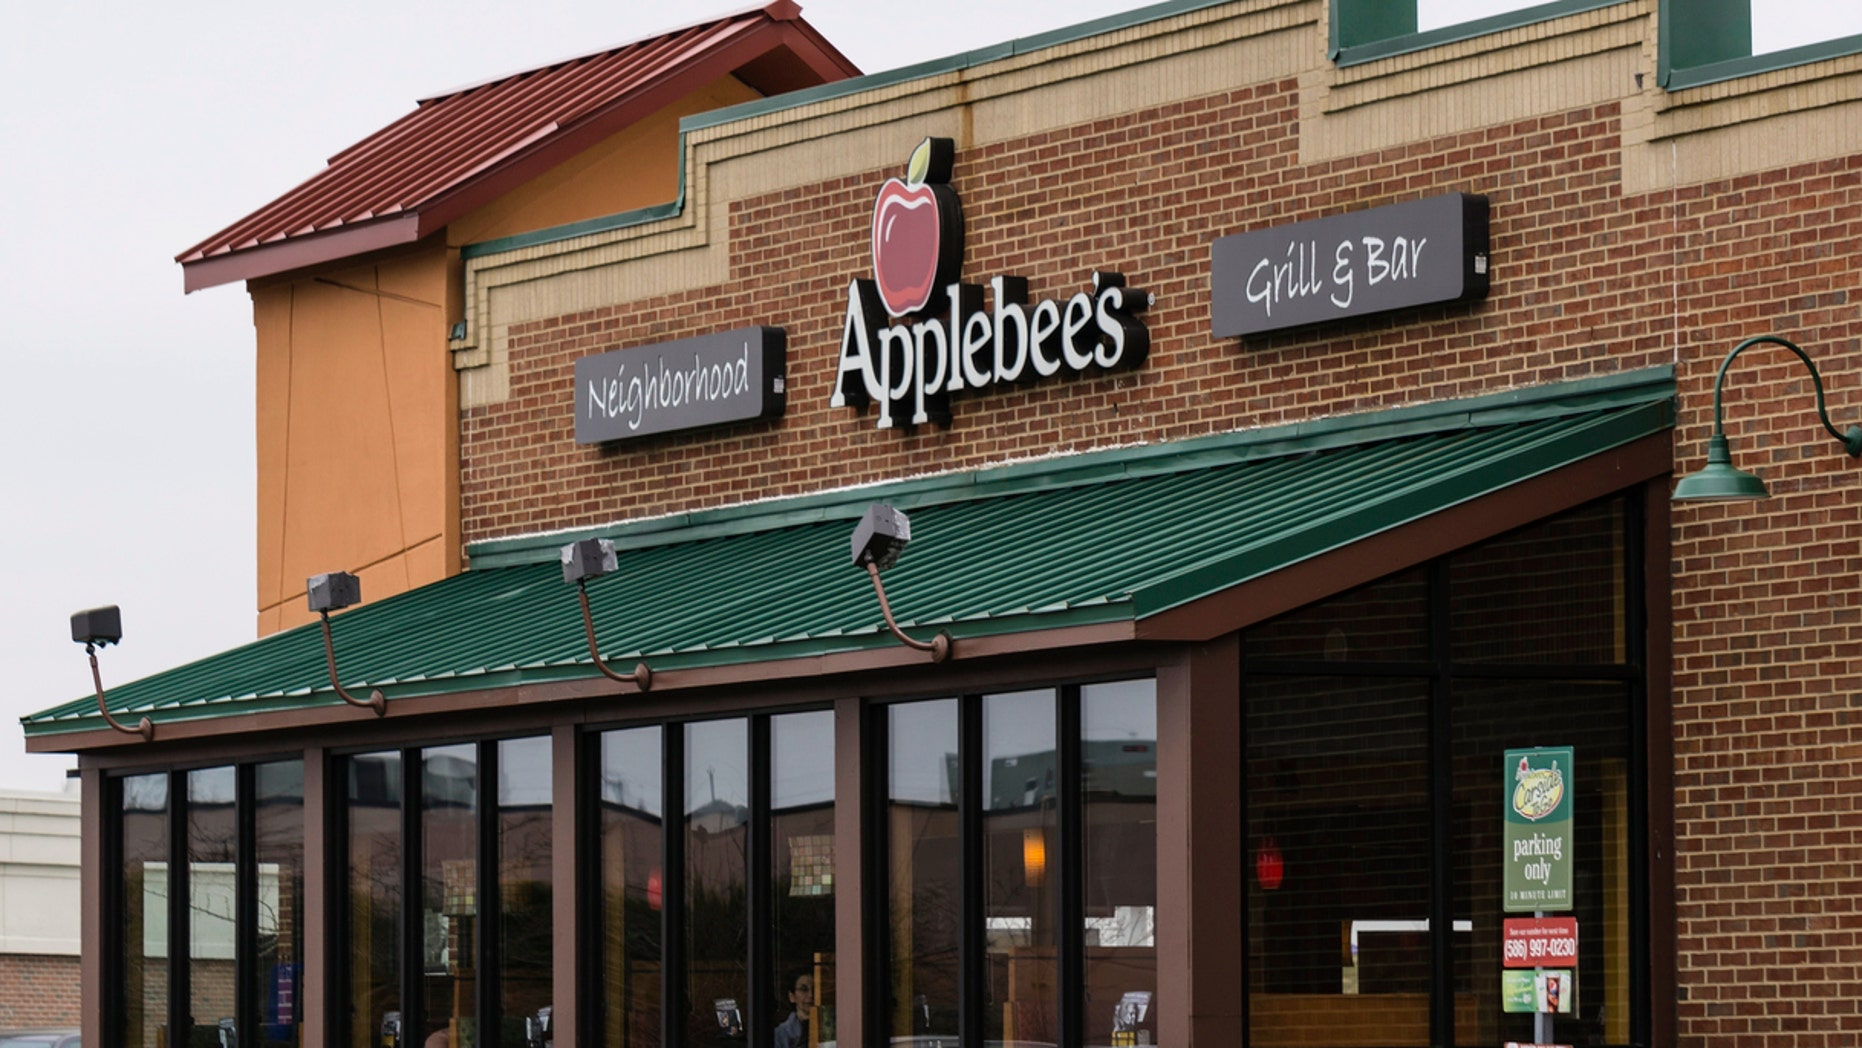 Shelby Township, Michigan, USA - March 23, 2016: People in an Applebee's restaurant in Shelby Township. Applebee's is a chain of casual dining restaurants with locations across the United States.